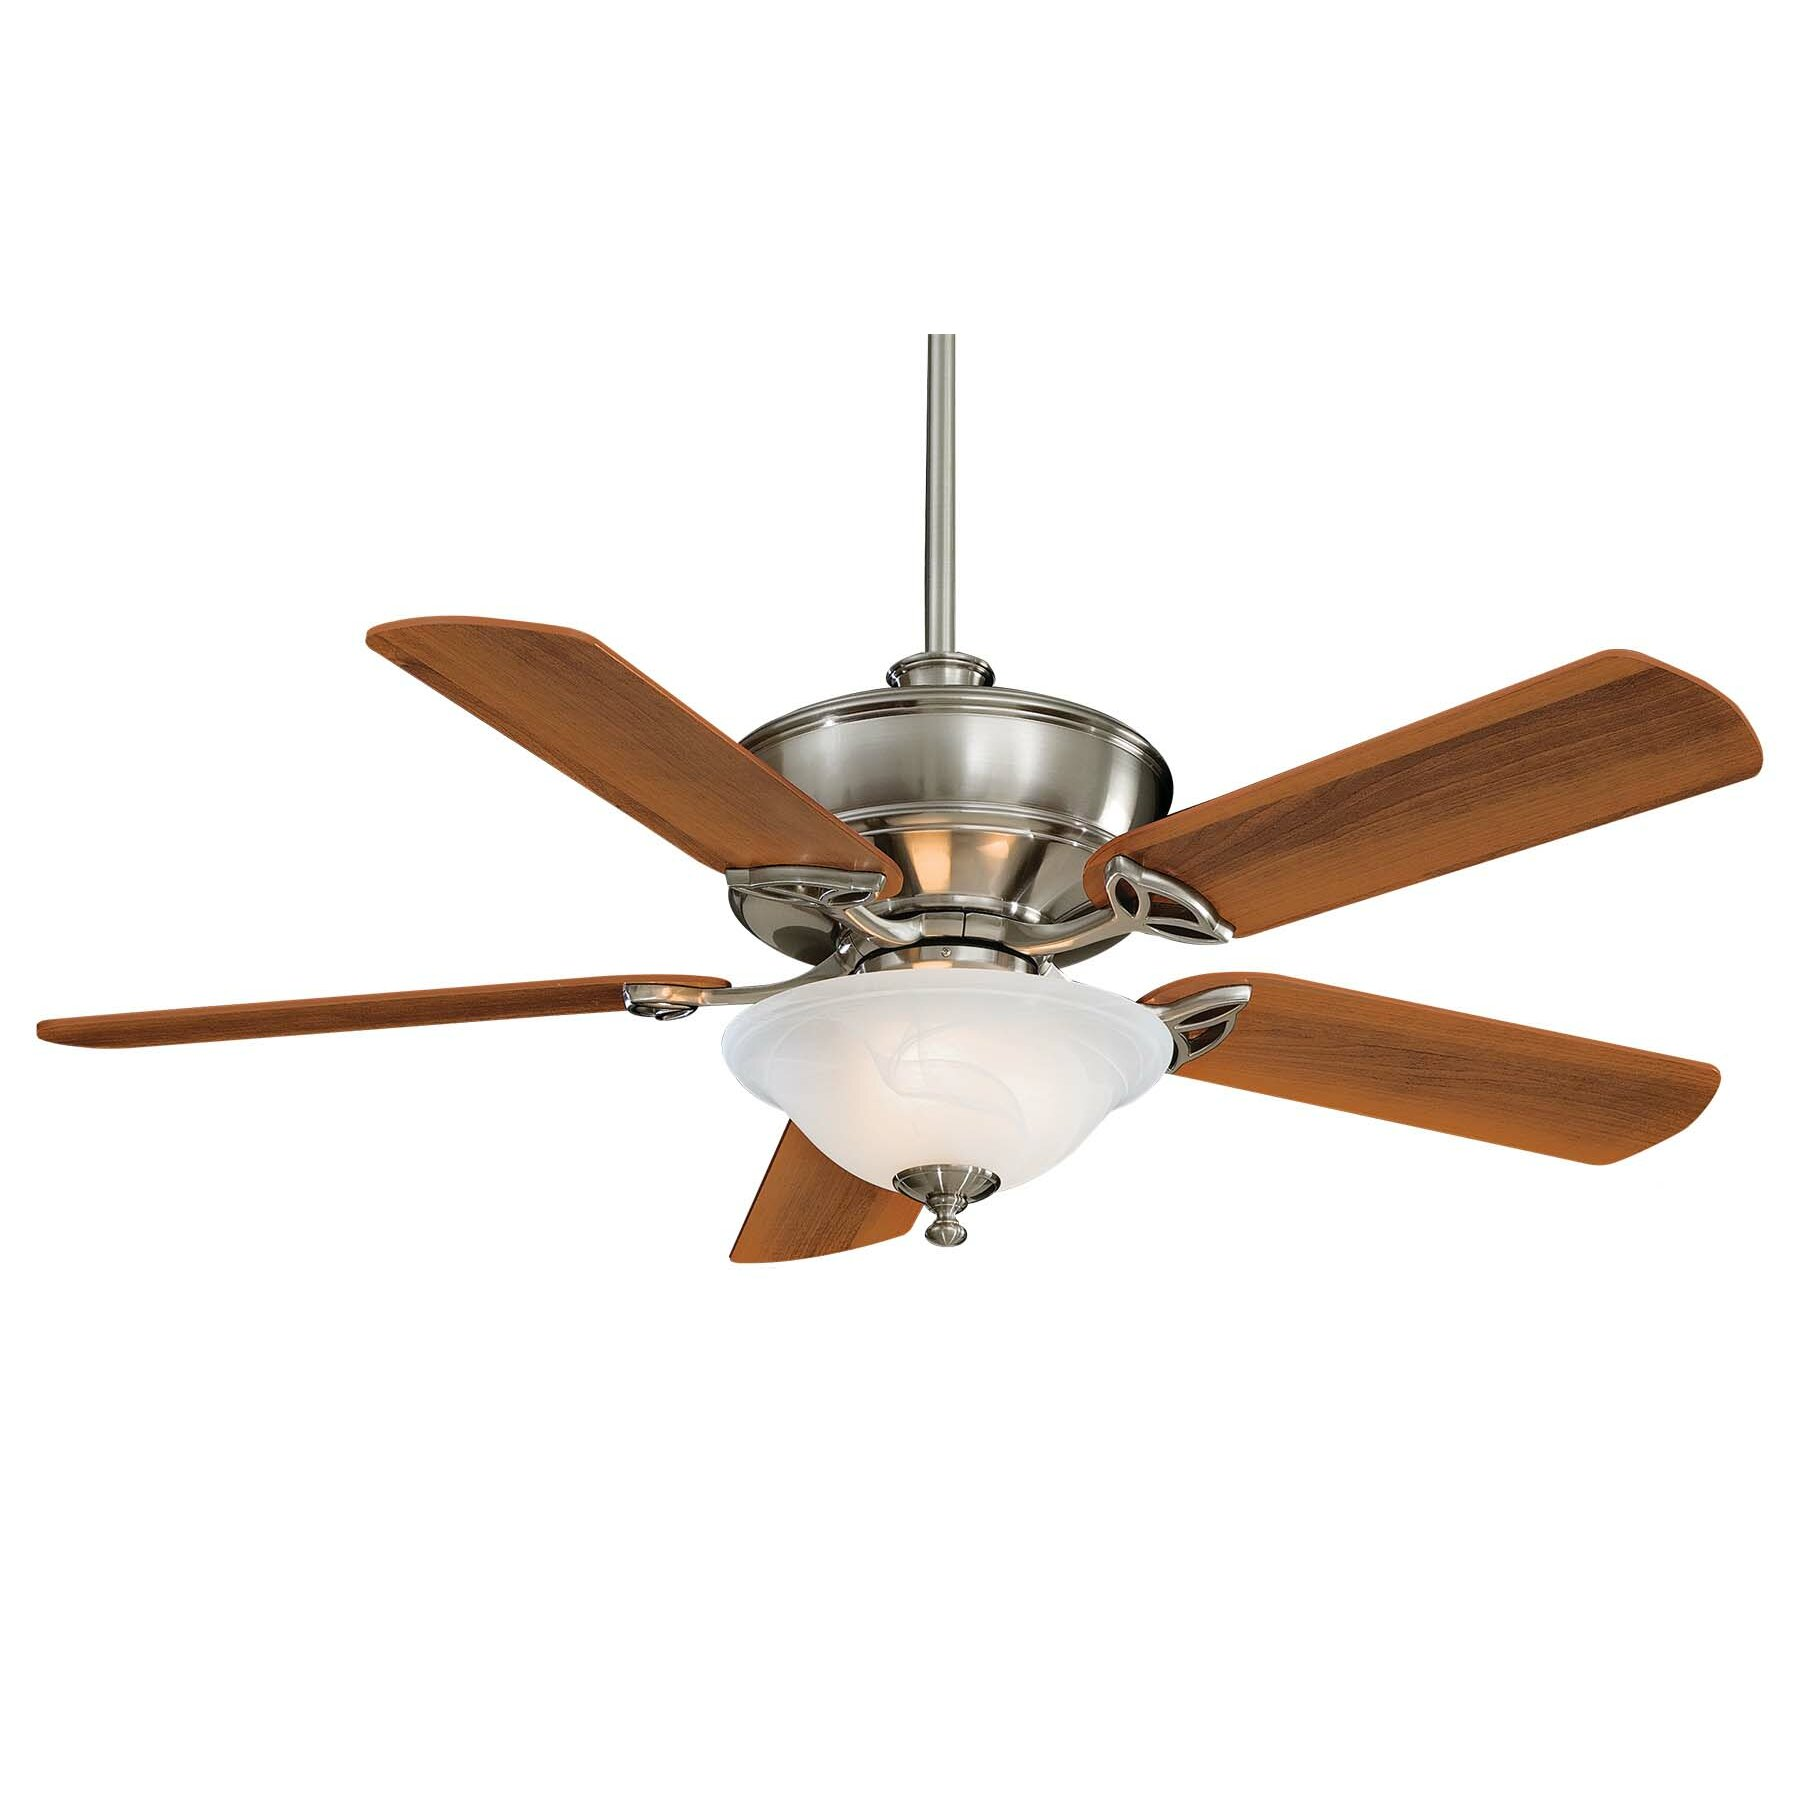 Whoosh Ceiling Fan Replacement Blades Design